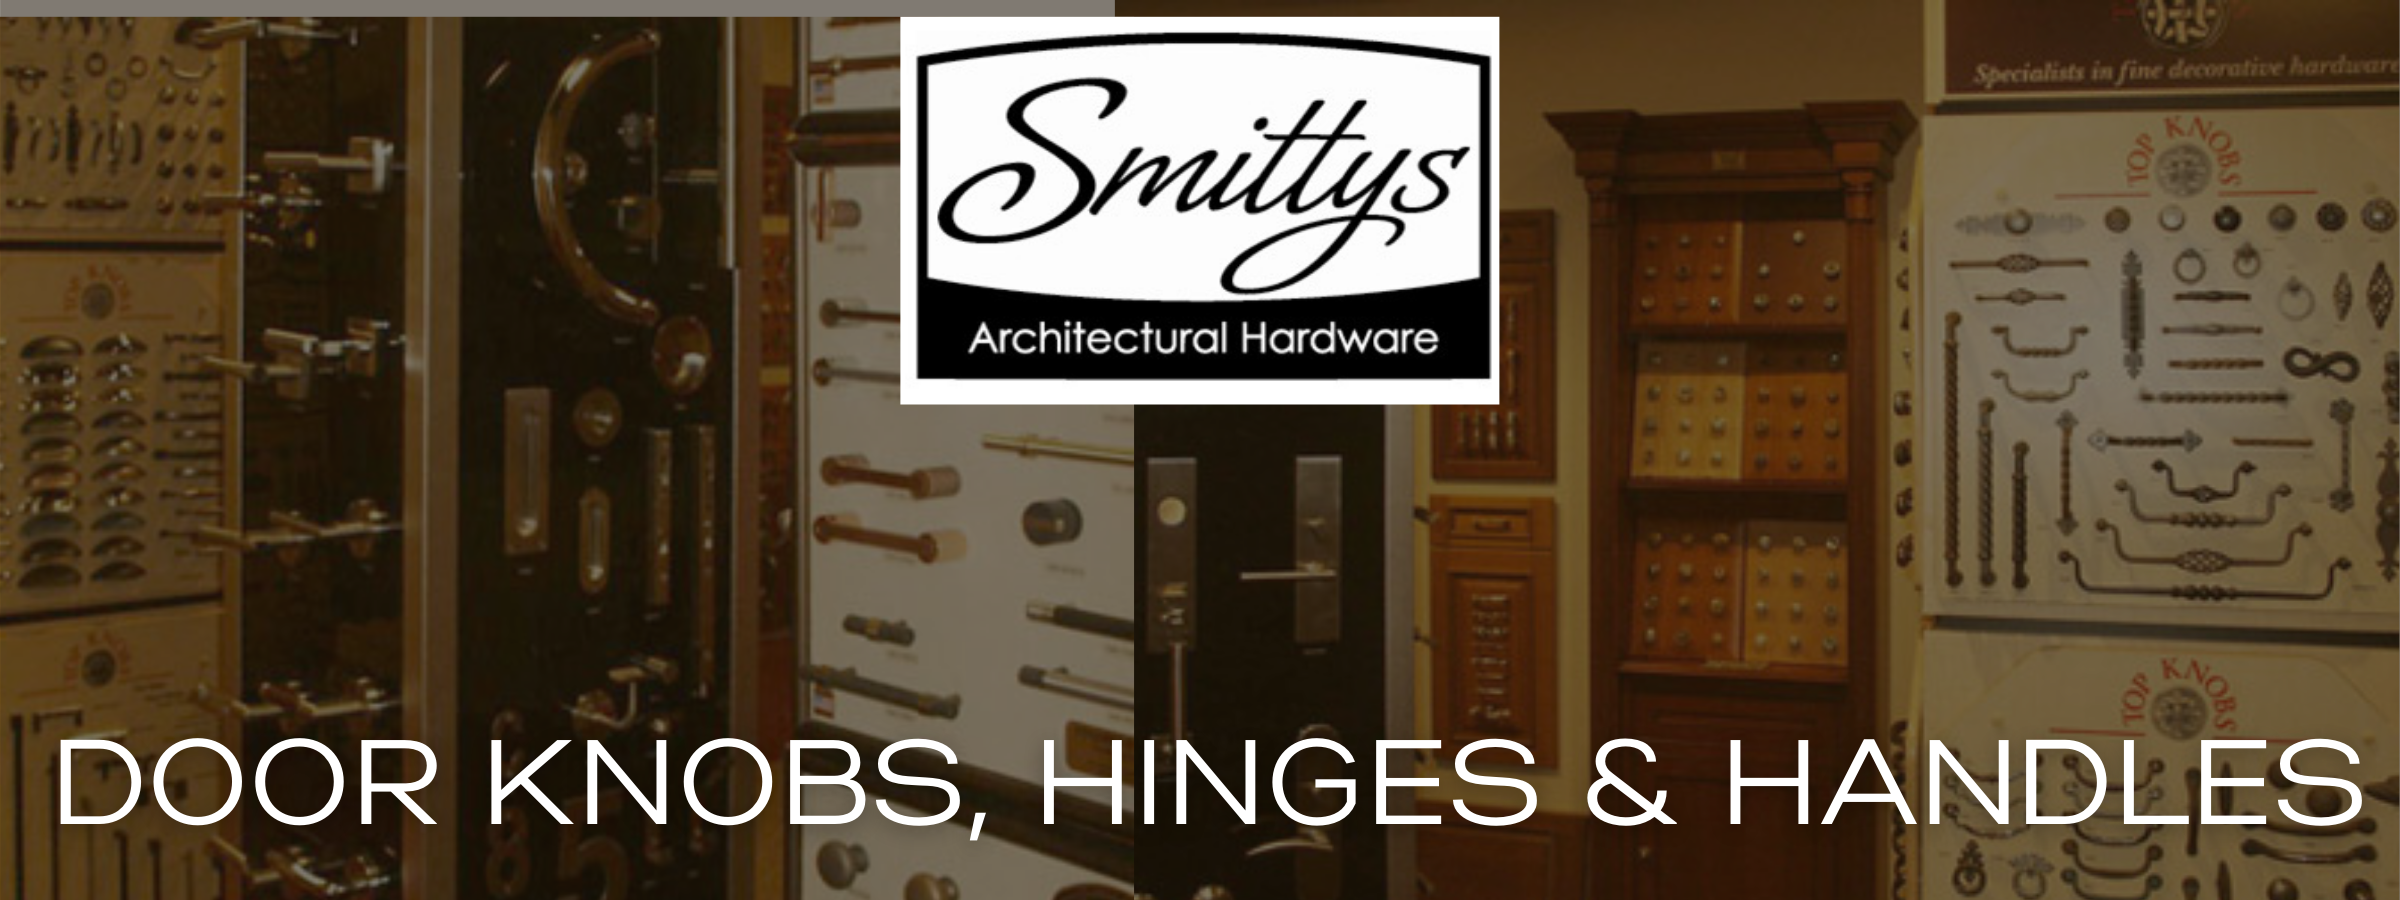 Smittys Architectural Hardware